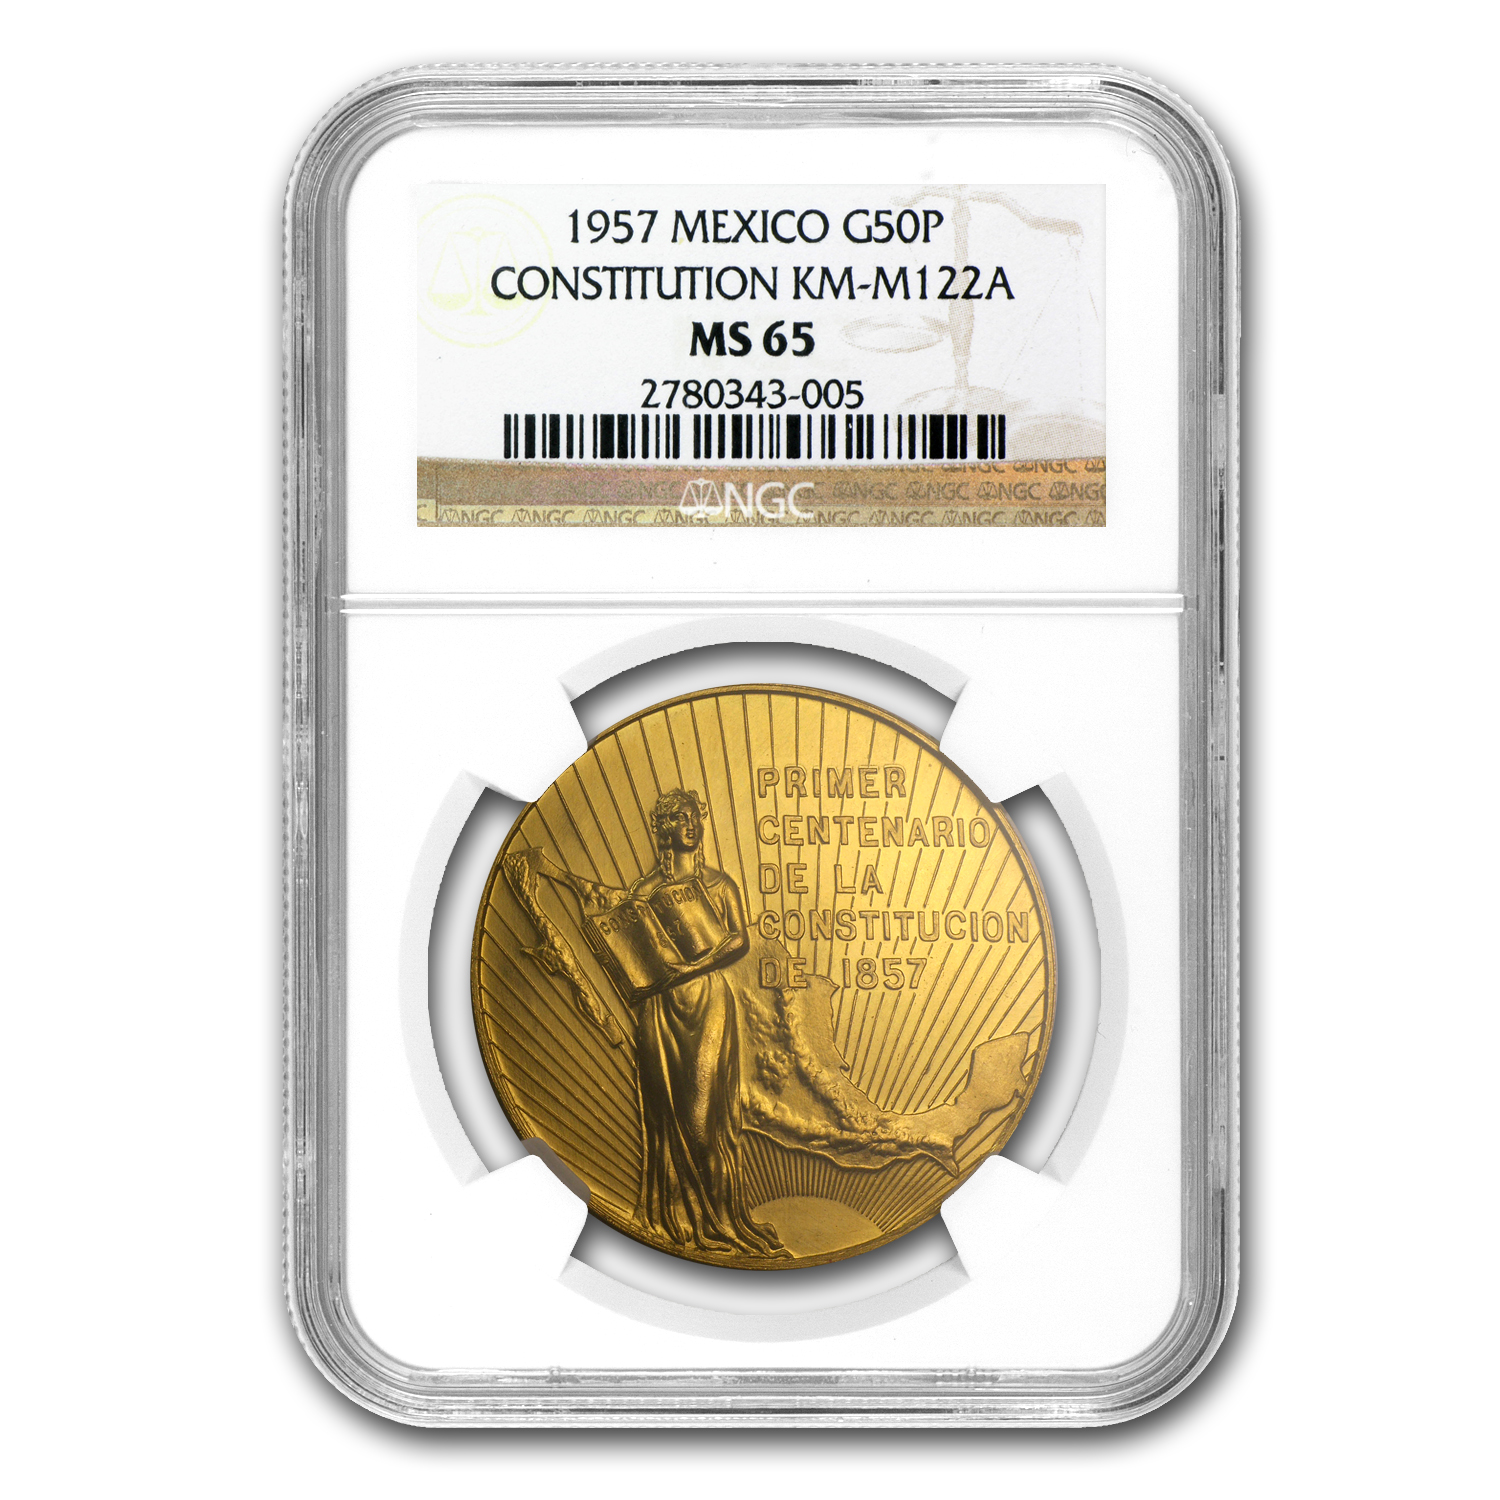 1957 Mexico Centennial of Constitution Medal - MS-65 NGC